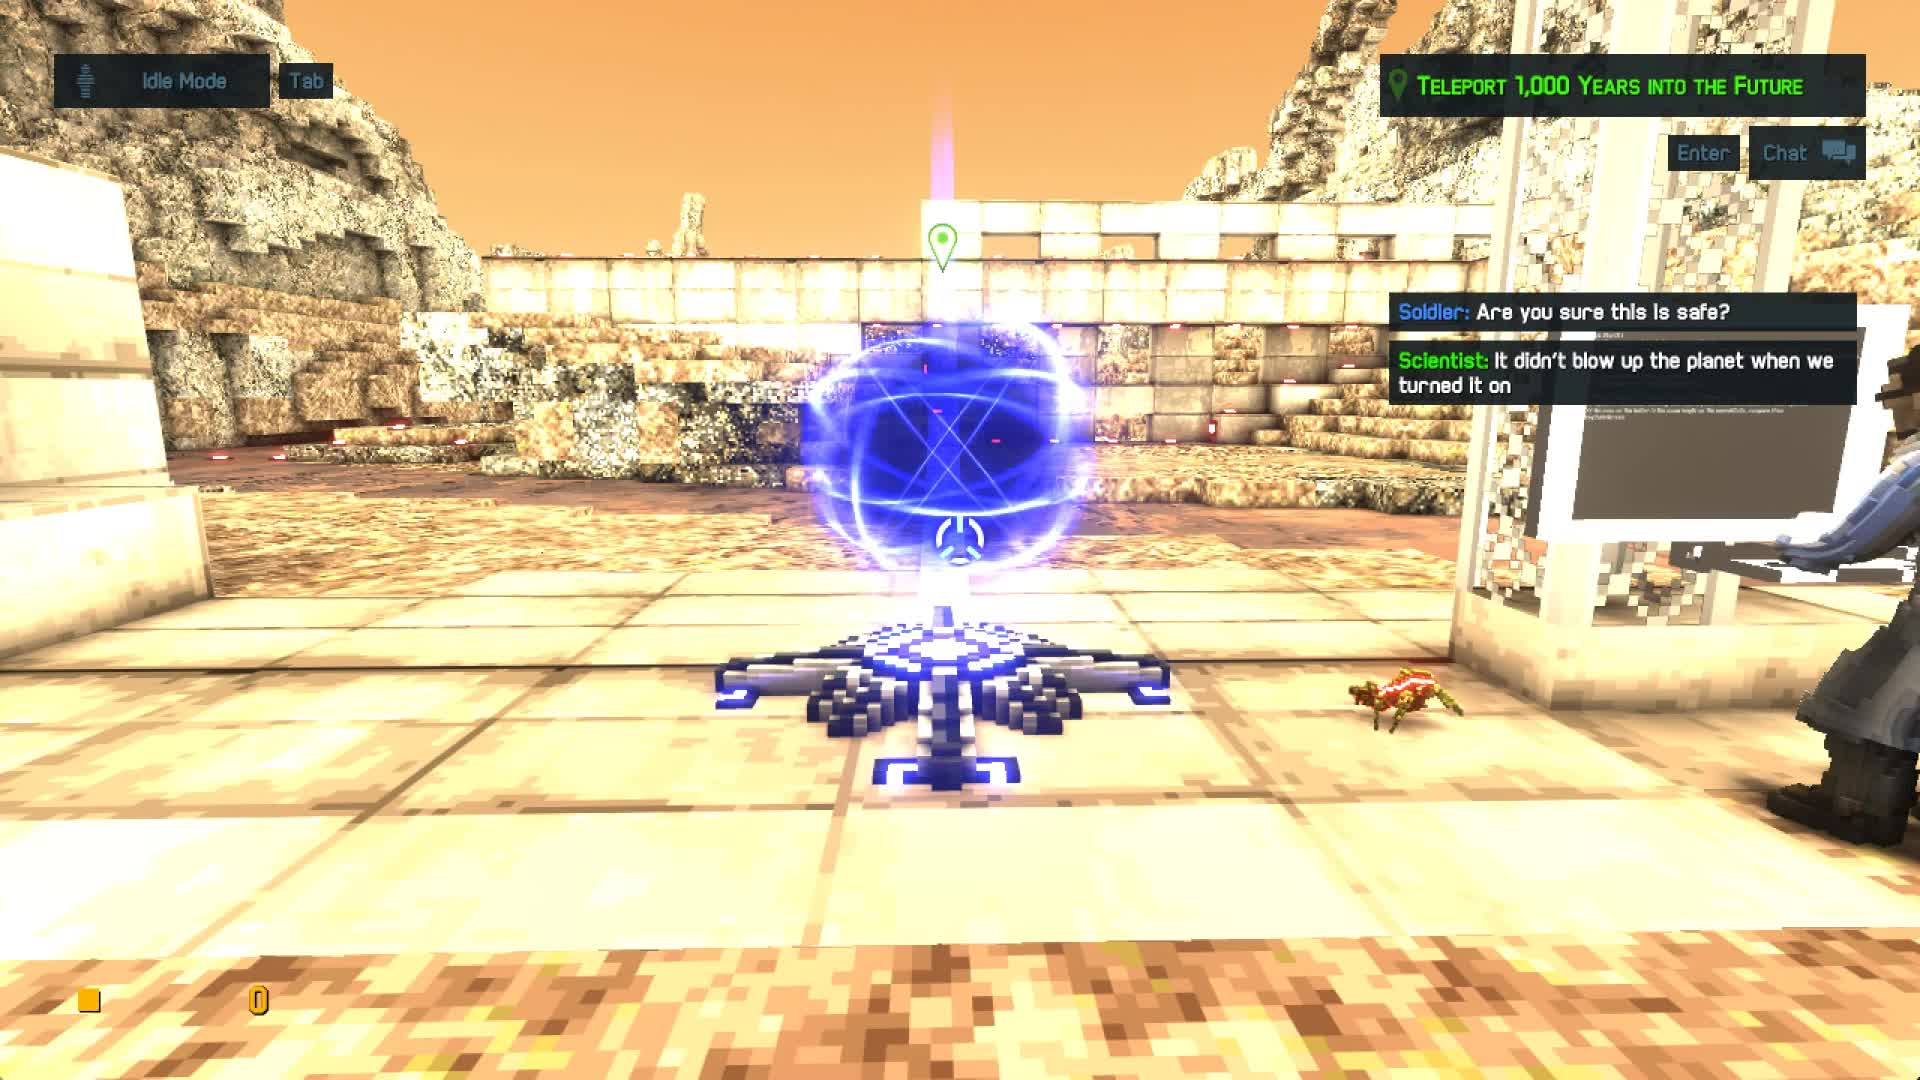 FPS, Game, Incremental, Proton Studio, RPG, Time Clickers 2, Time Warpers, Video Game, Time Warpers Teleporting GIFs